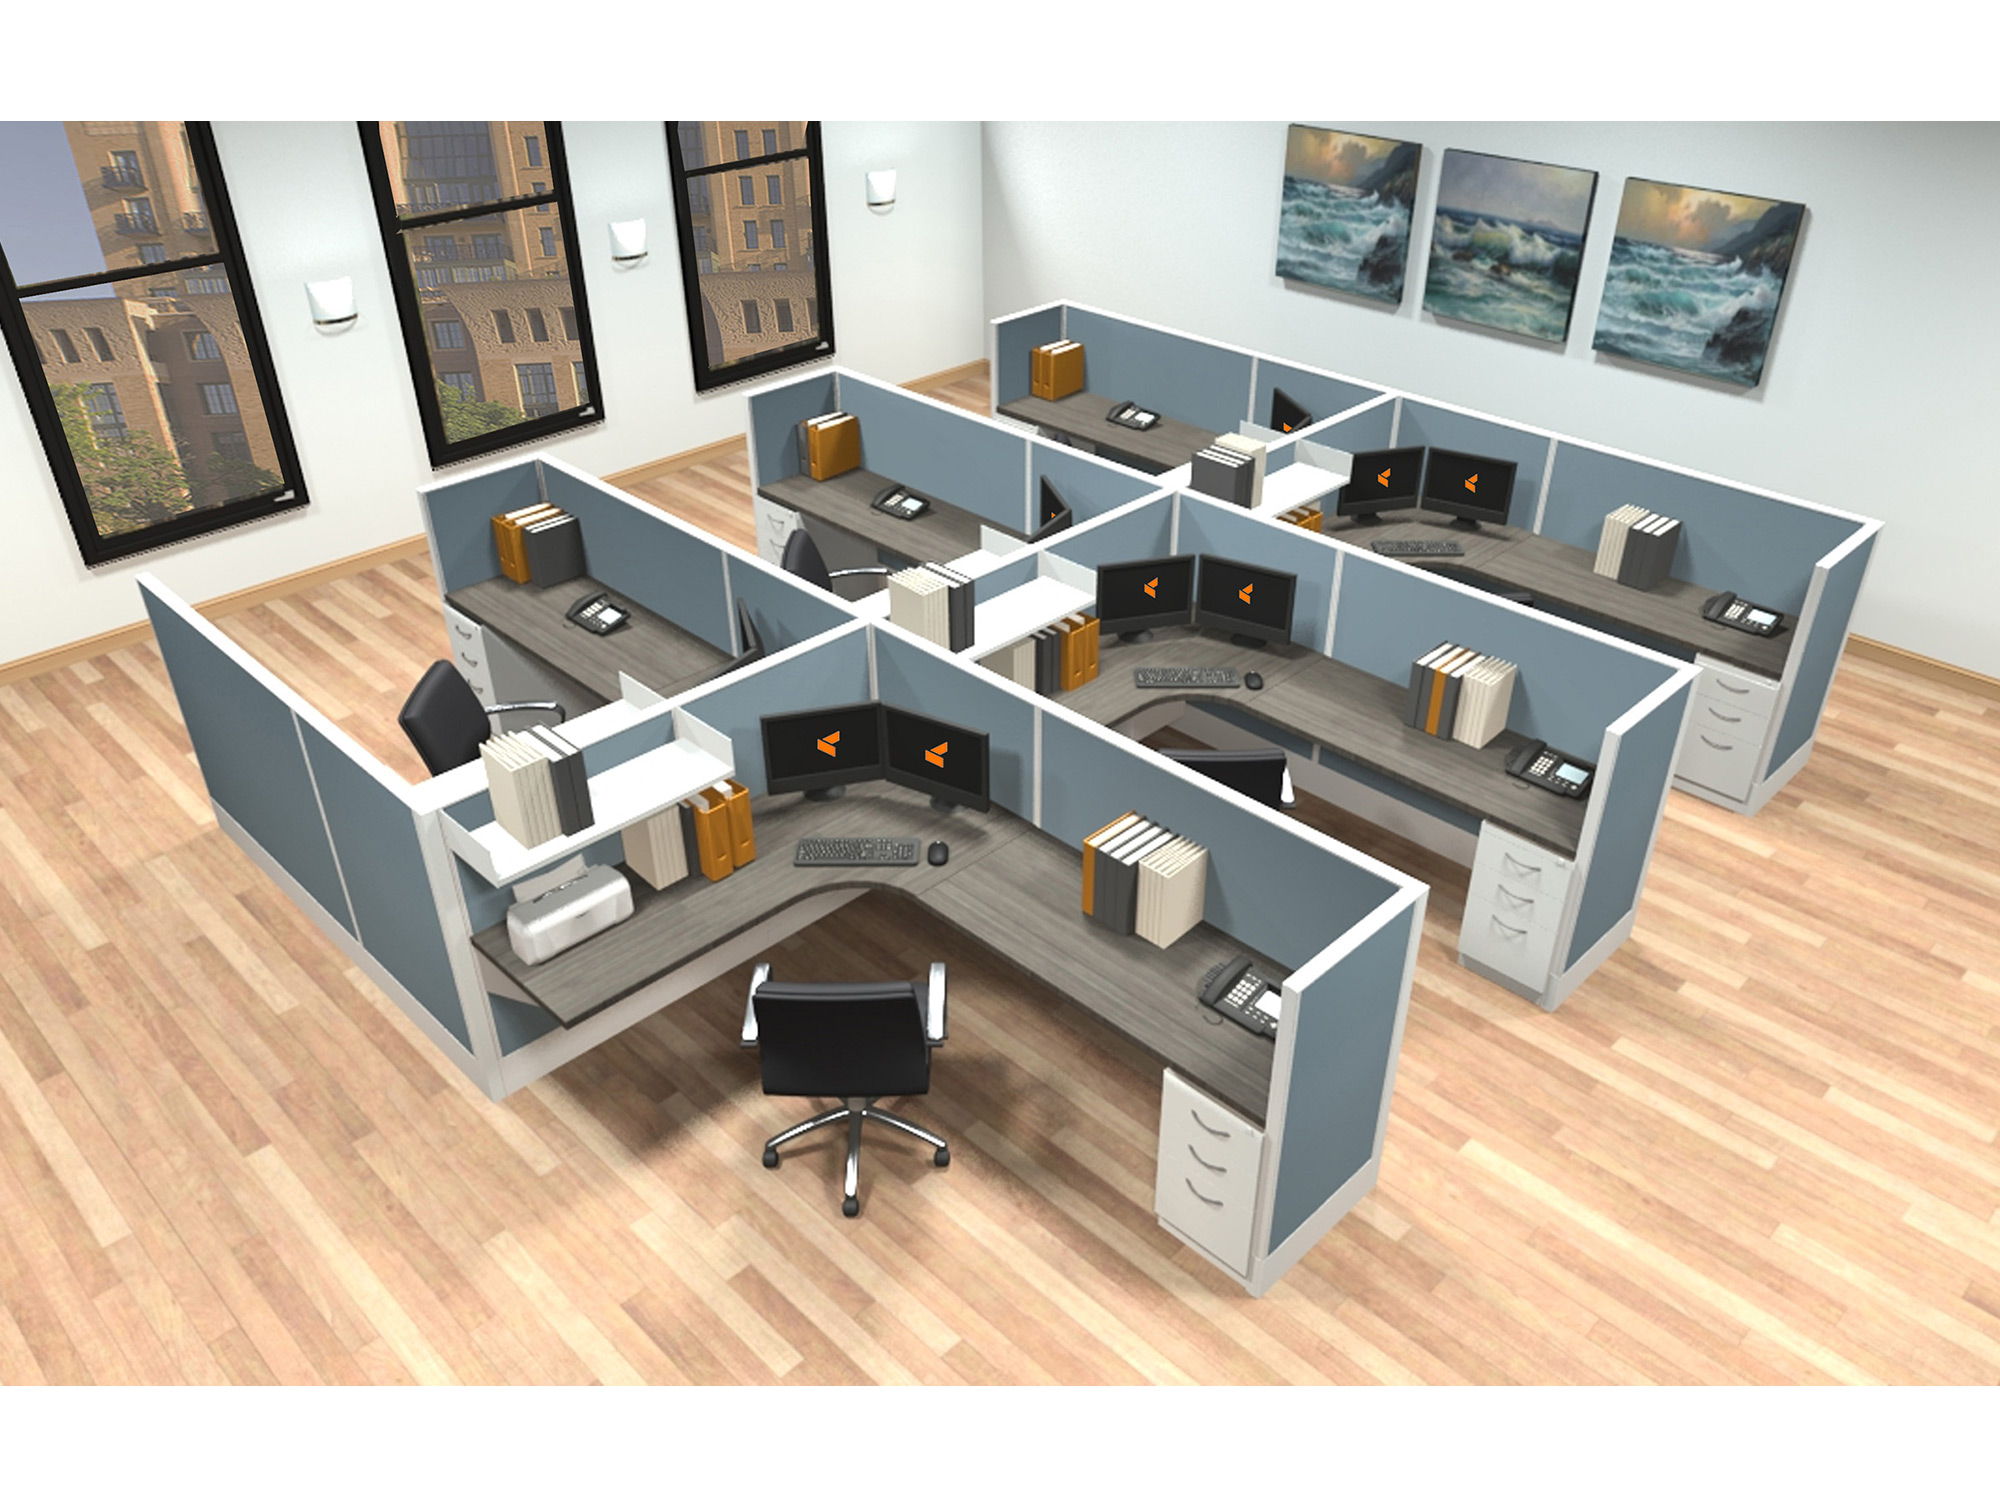 6x8 modular workstations from AIS - 6 Pack Cluster